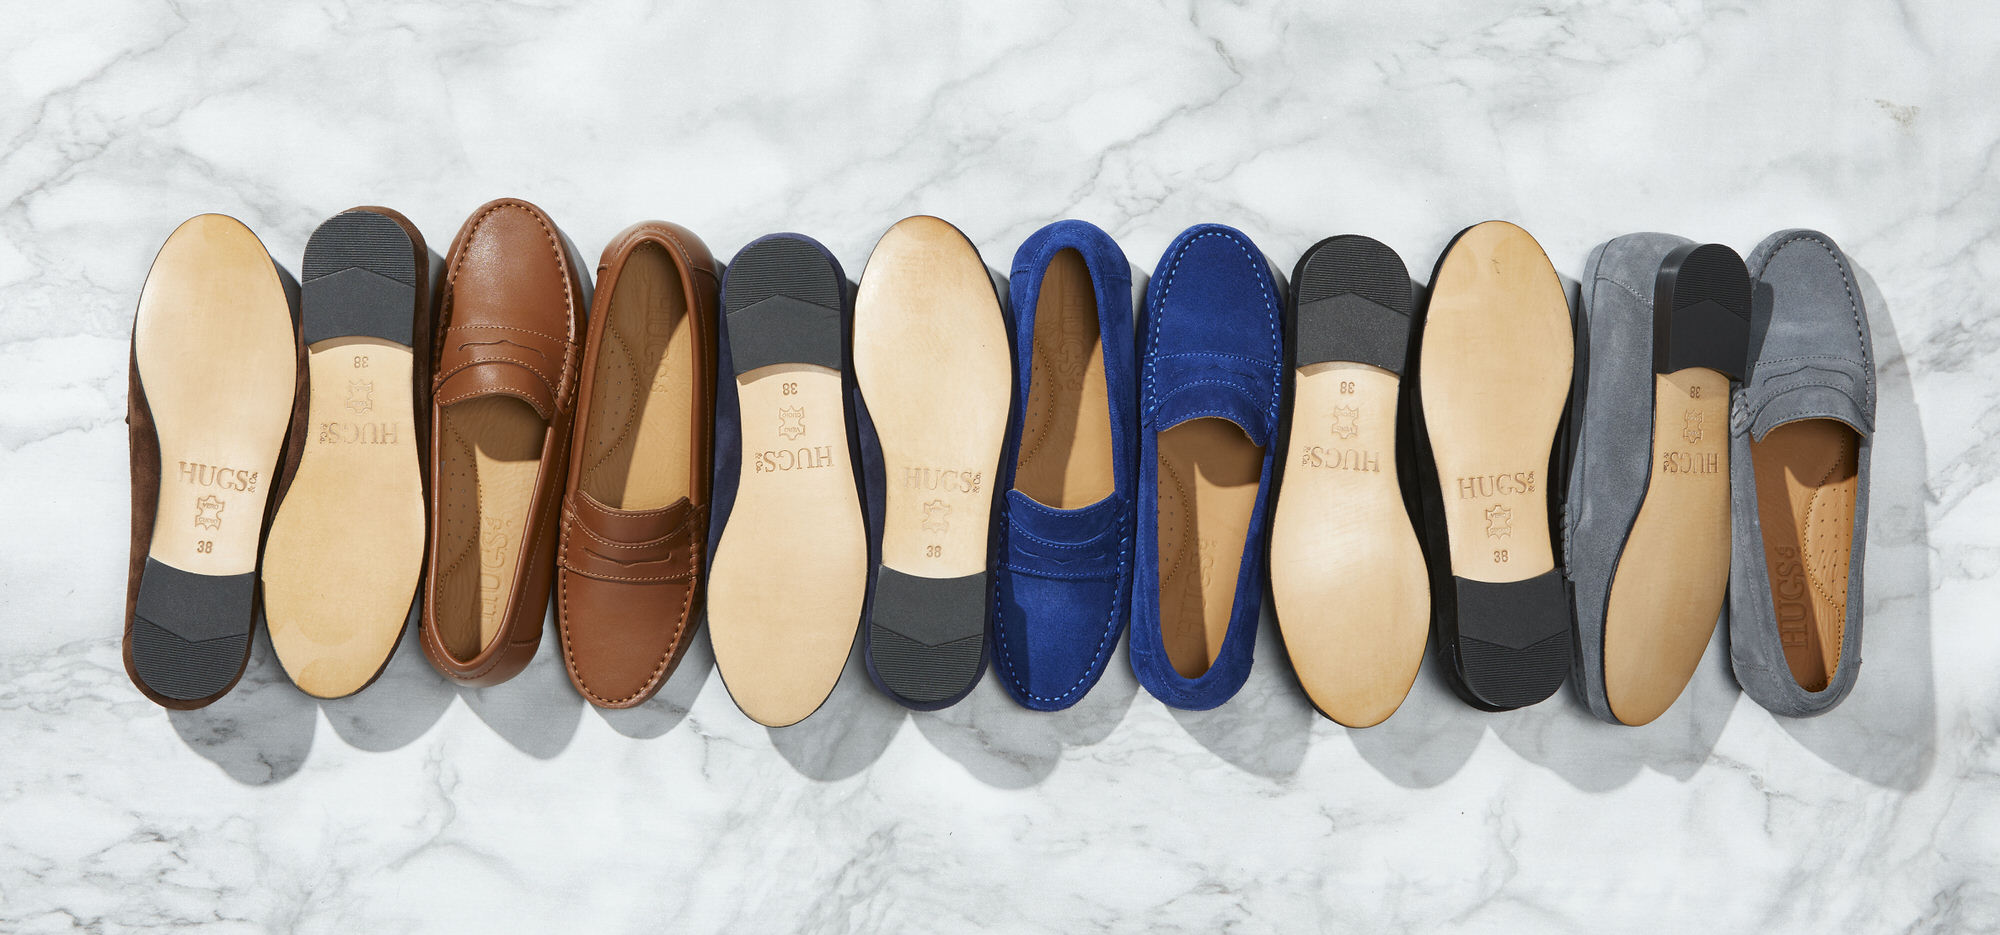 Hugs & Co. penny loafers